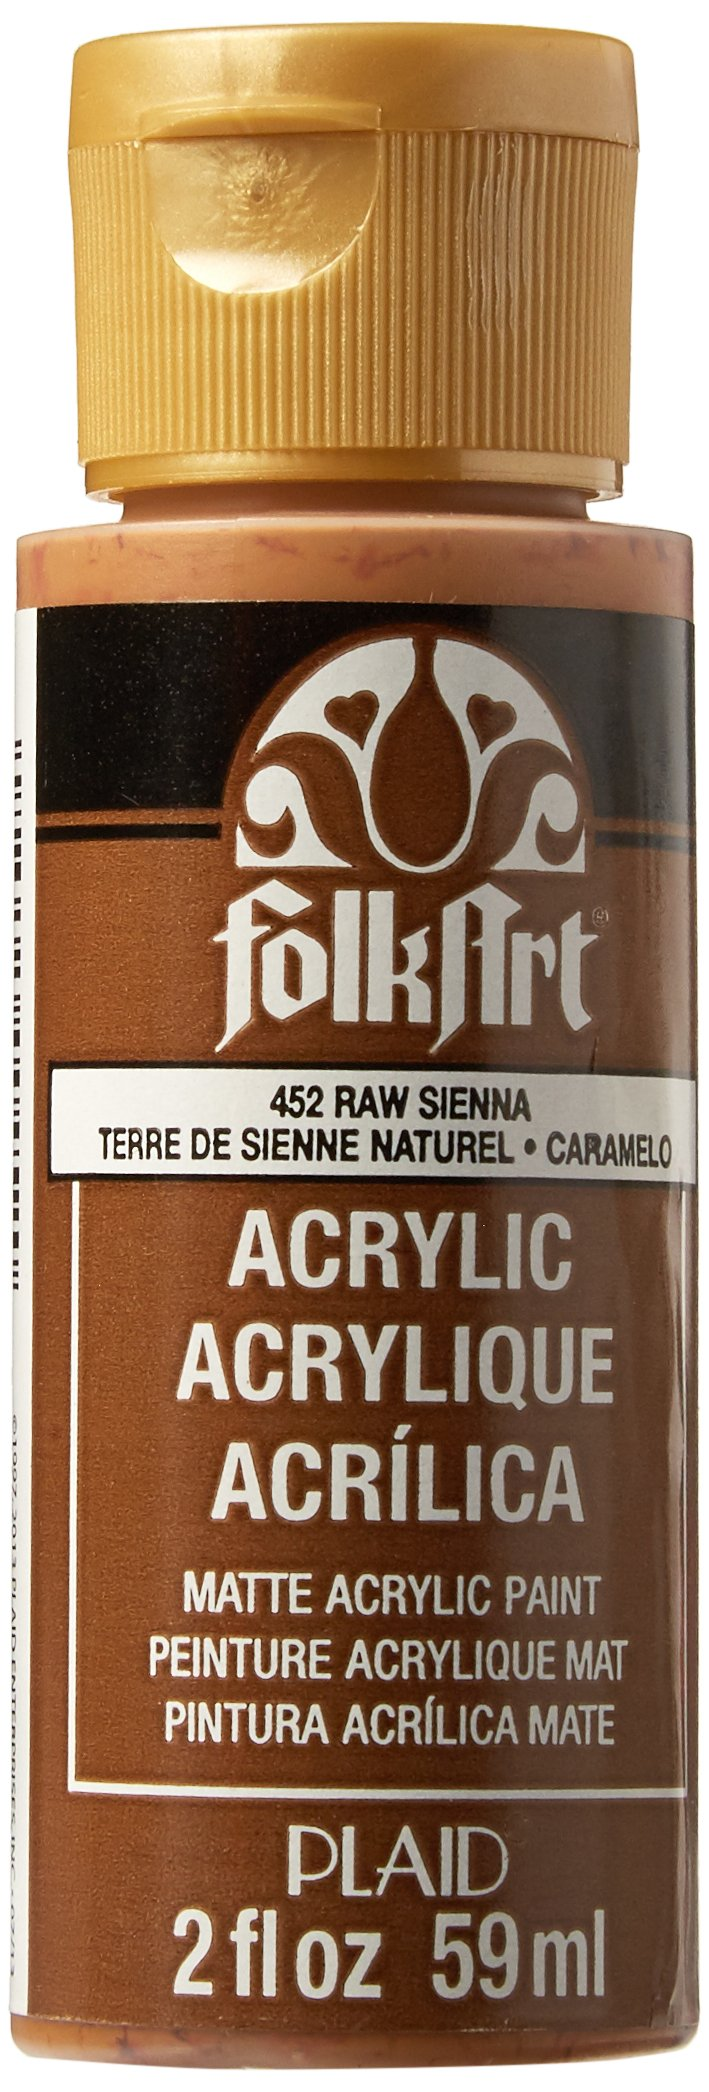 FolkArt Acrylic Paint in Assorted Colors (2 oz), 452, Raw Sienna